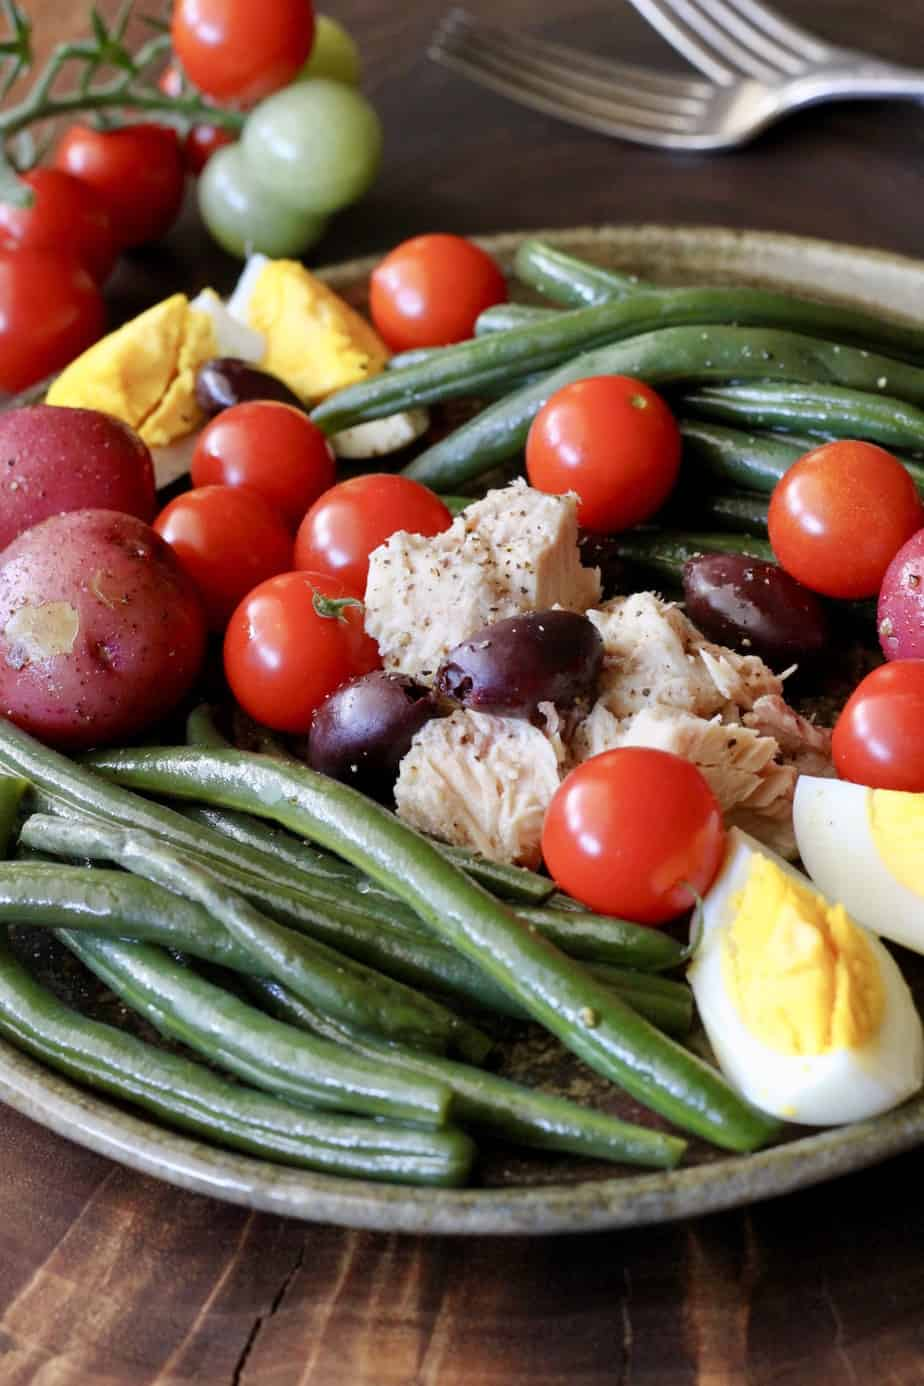 Nicoise salad with tuna, green beans, potatoes, eggs and tomato